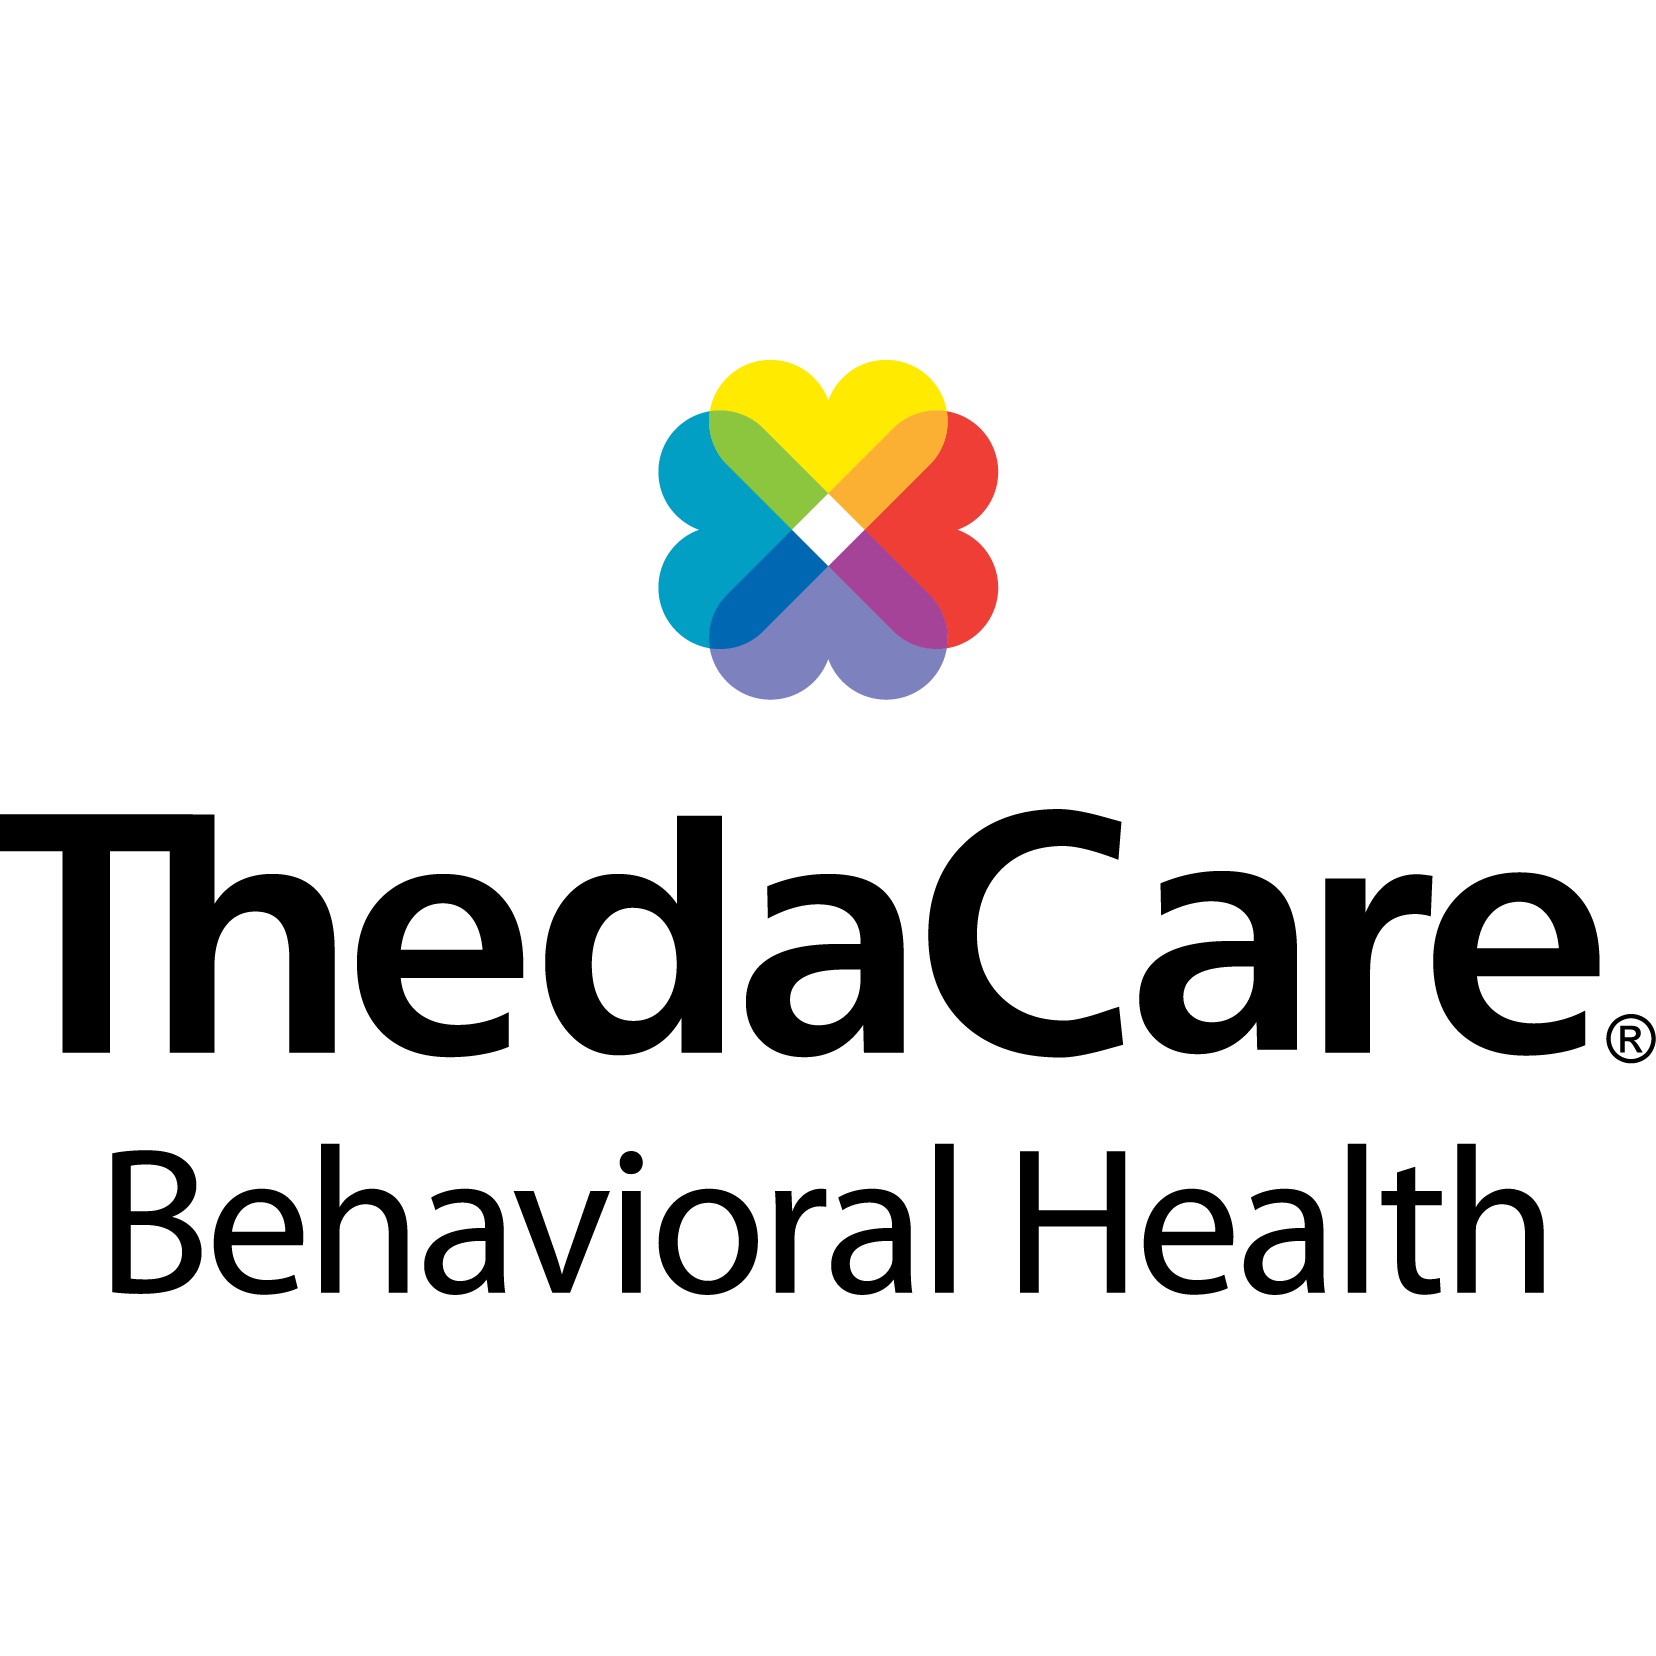 ThedaCare Behavioral Health